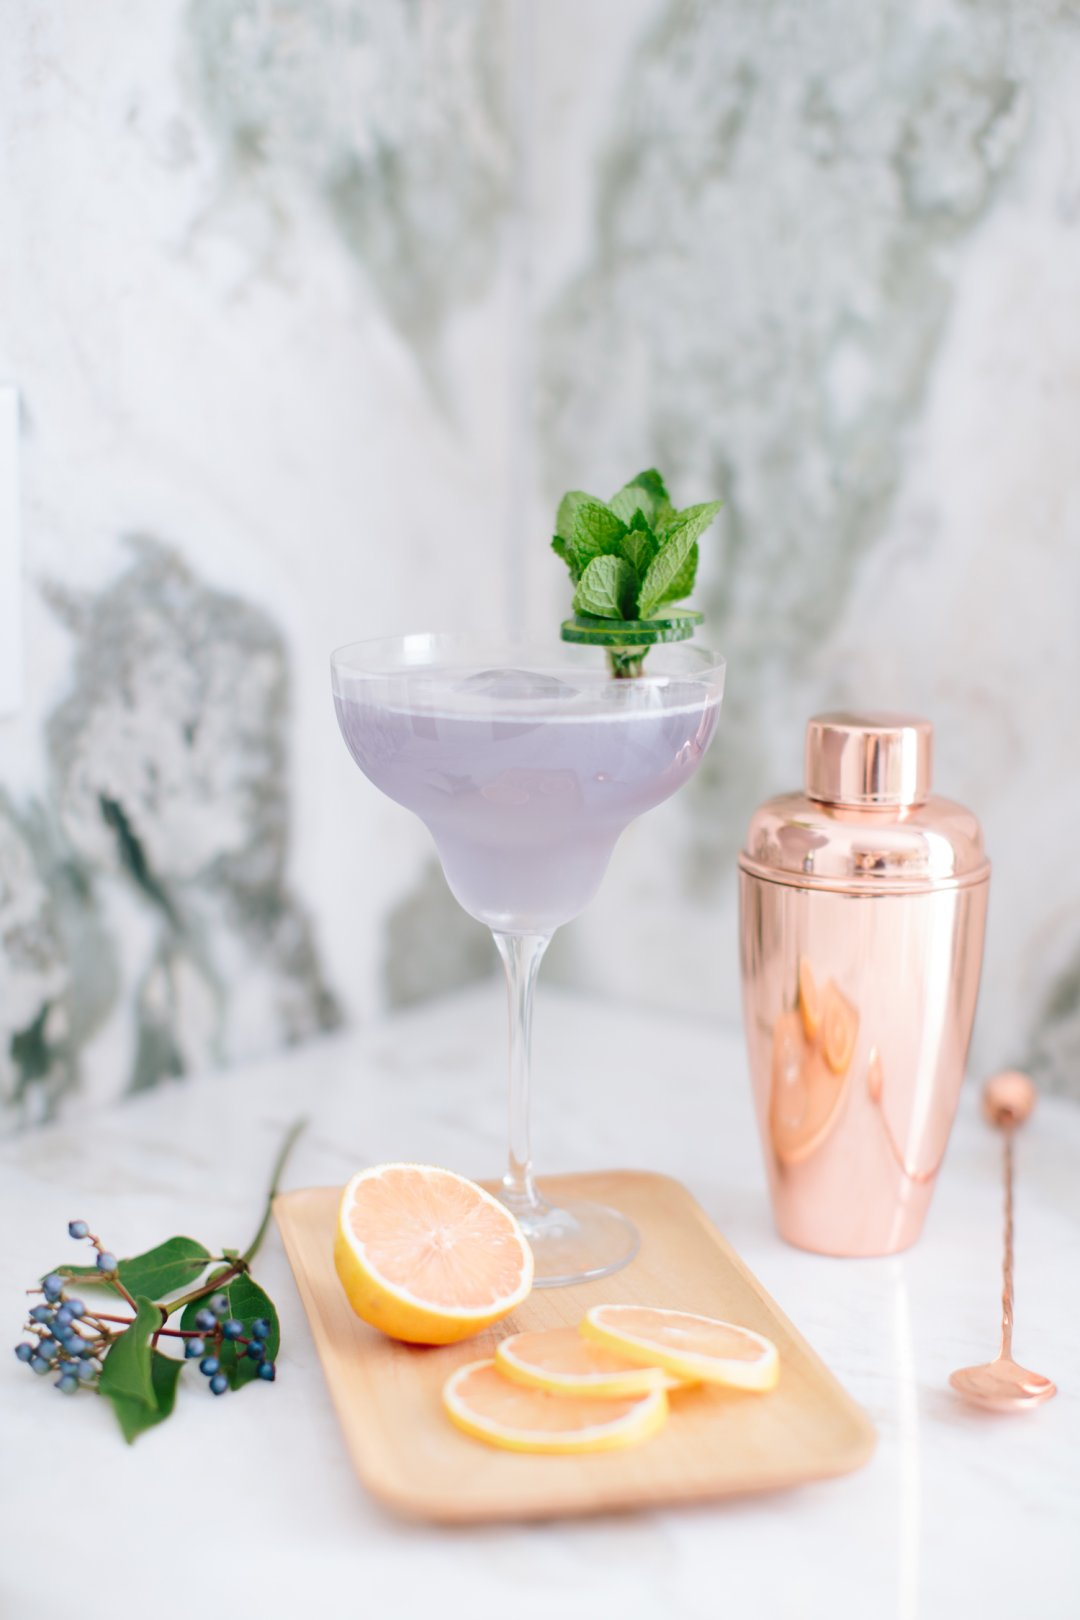 Violet Lemon Gin cocktail in a margarita glass with a copper cocktail shaker in the background